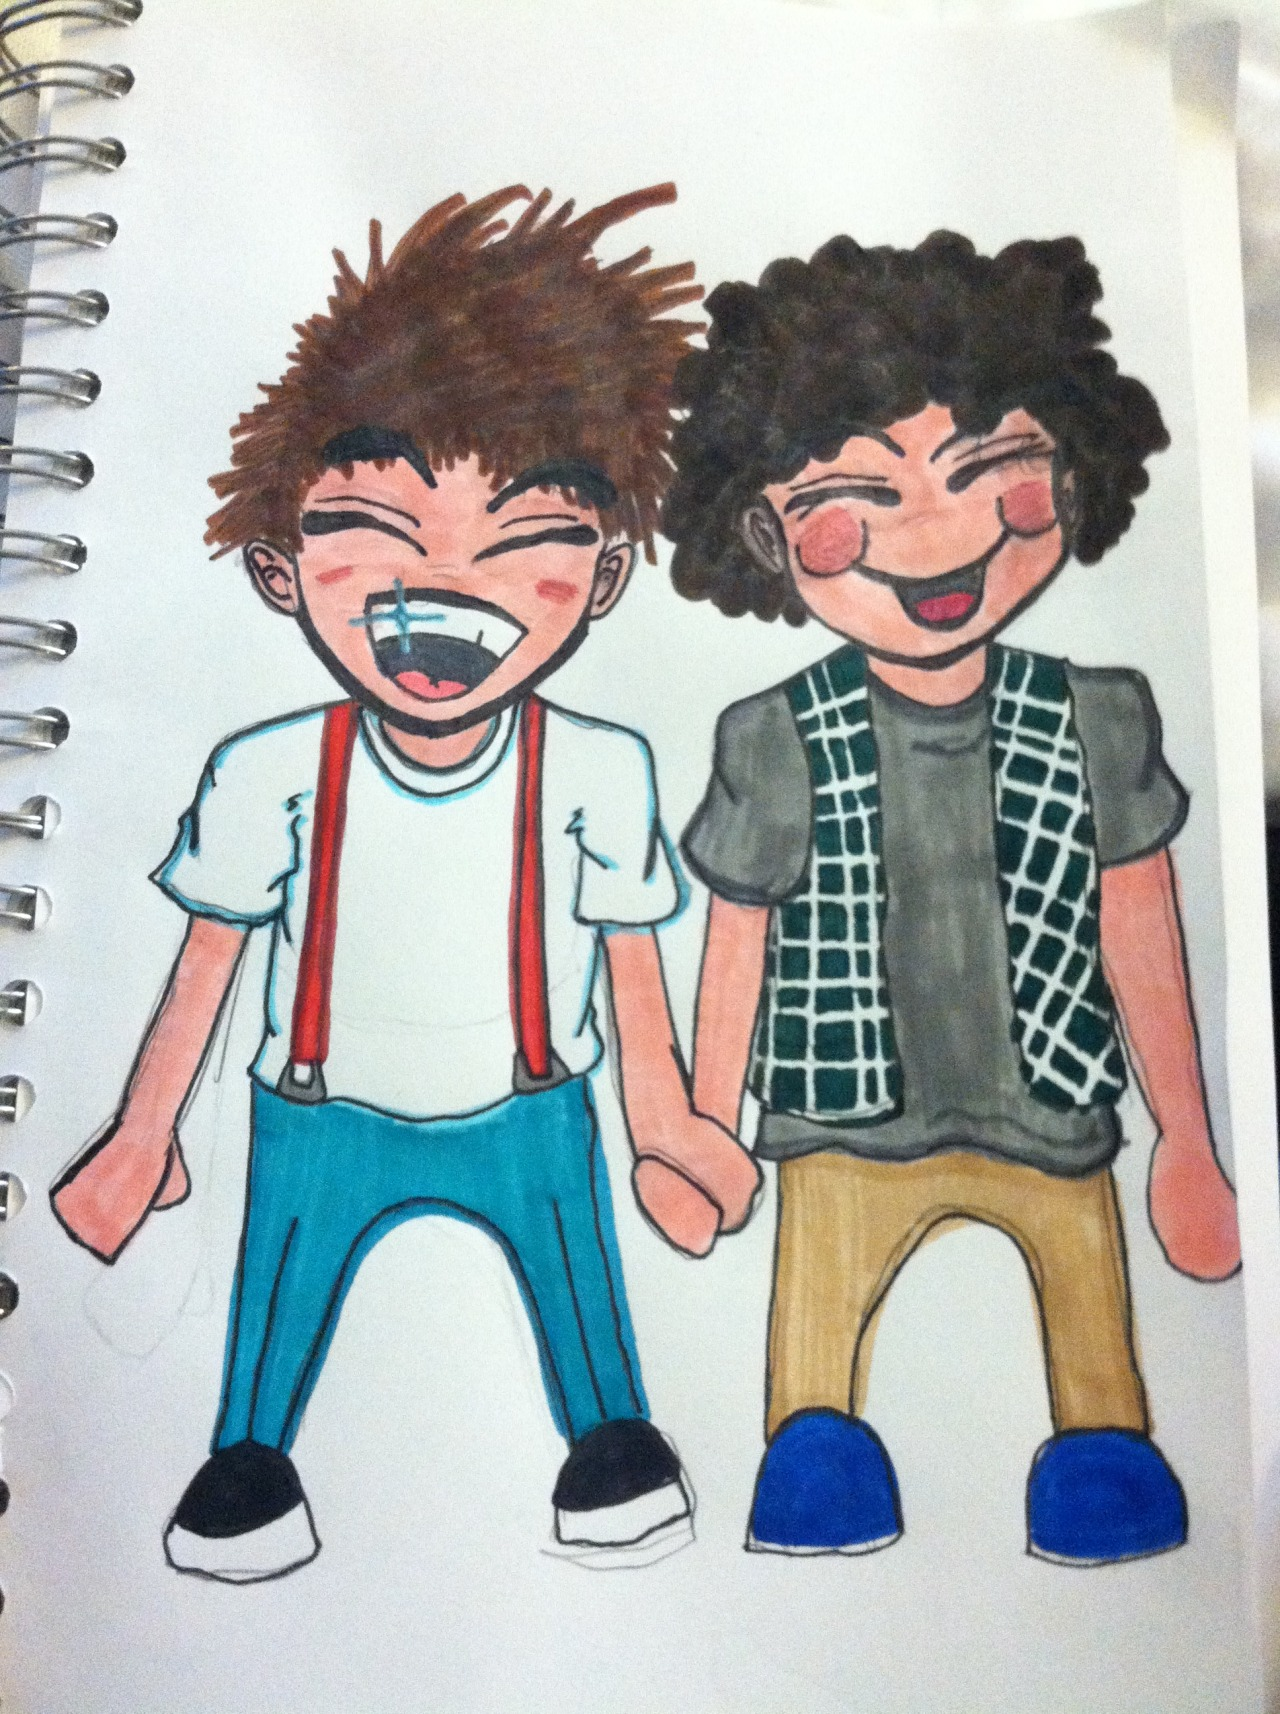 My Curi drew me some Larry love to make me feel better!